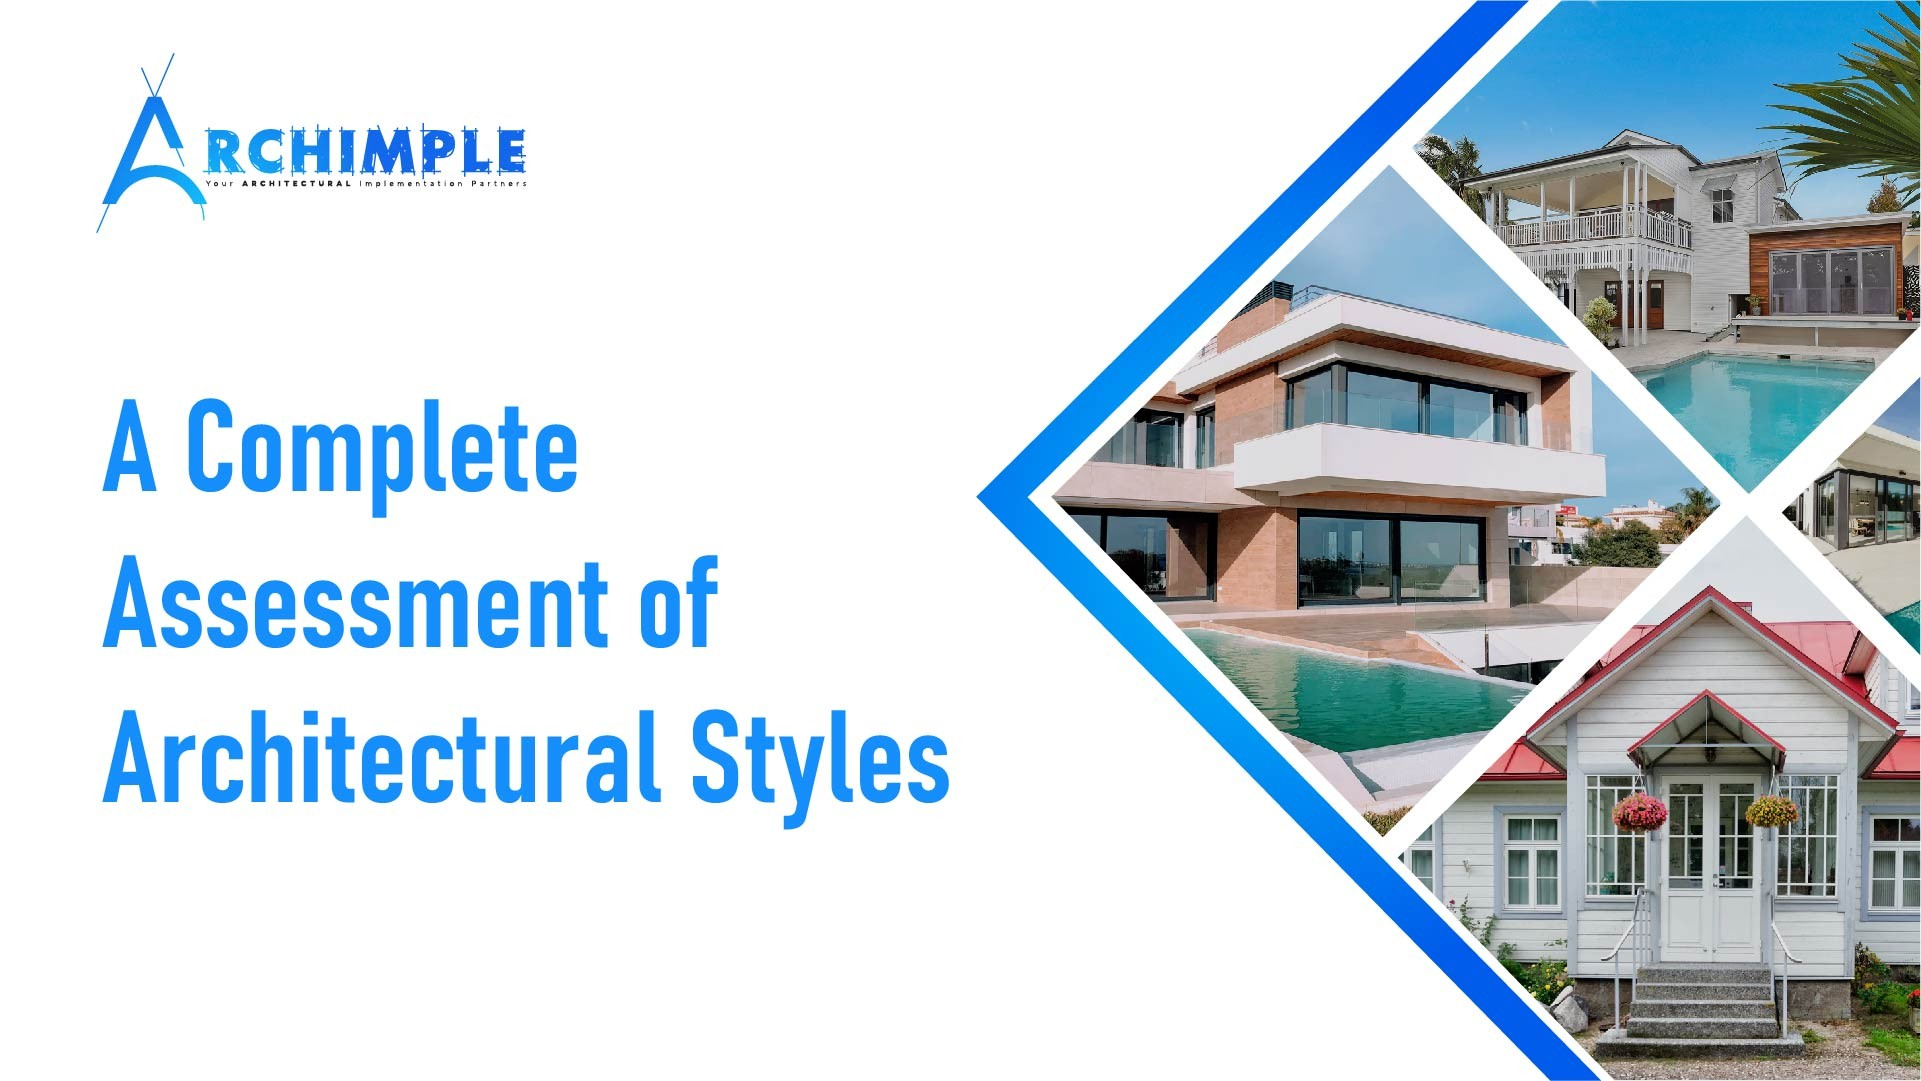 A Complete Assessment of Architectural Styles